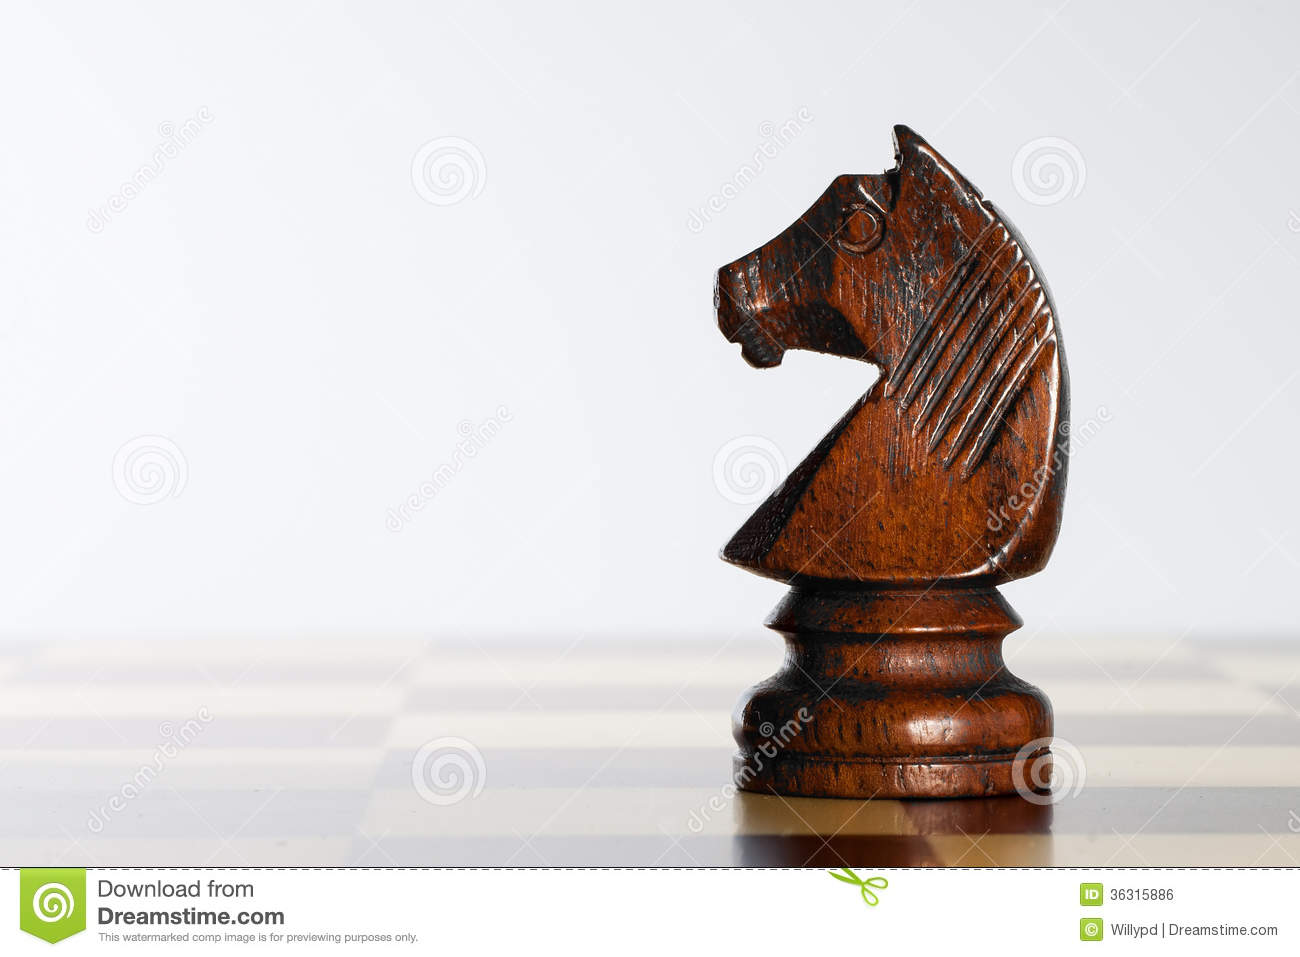 how to draw a knight chess piece